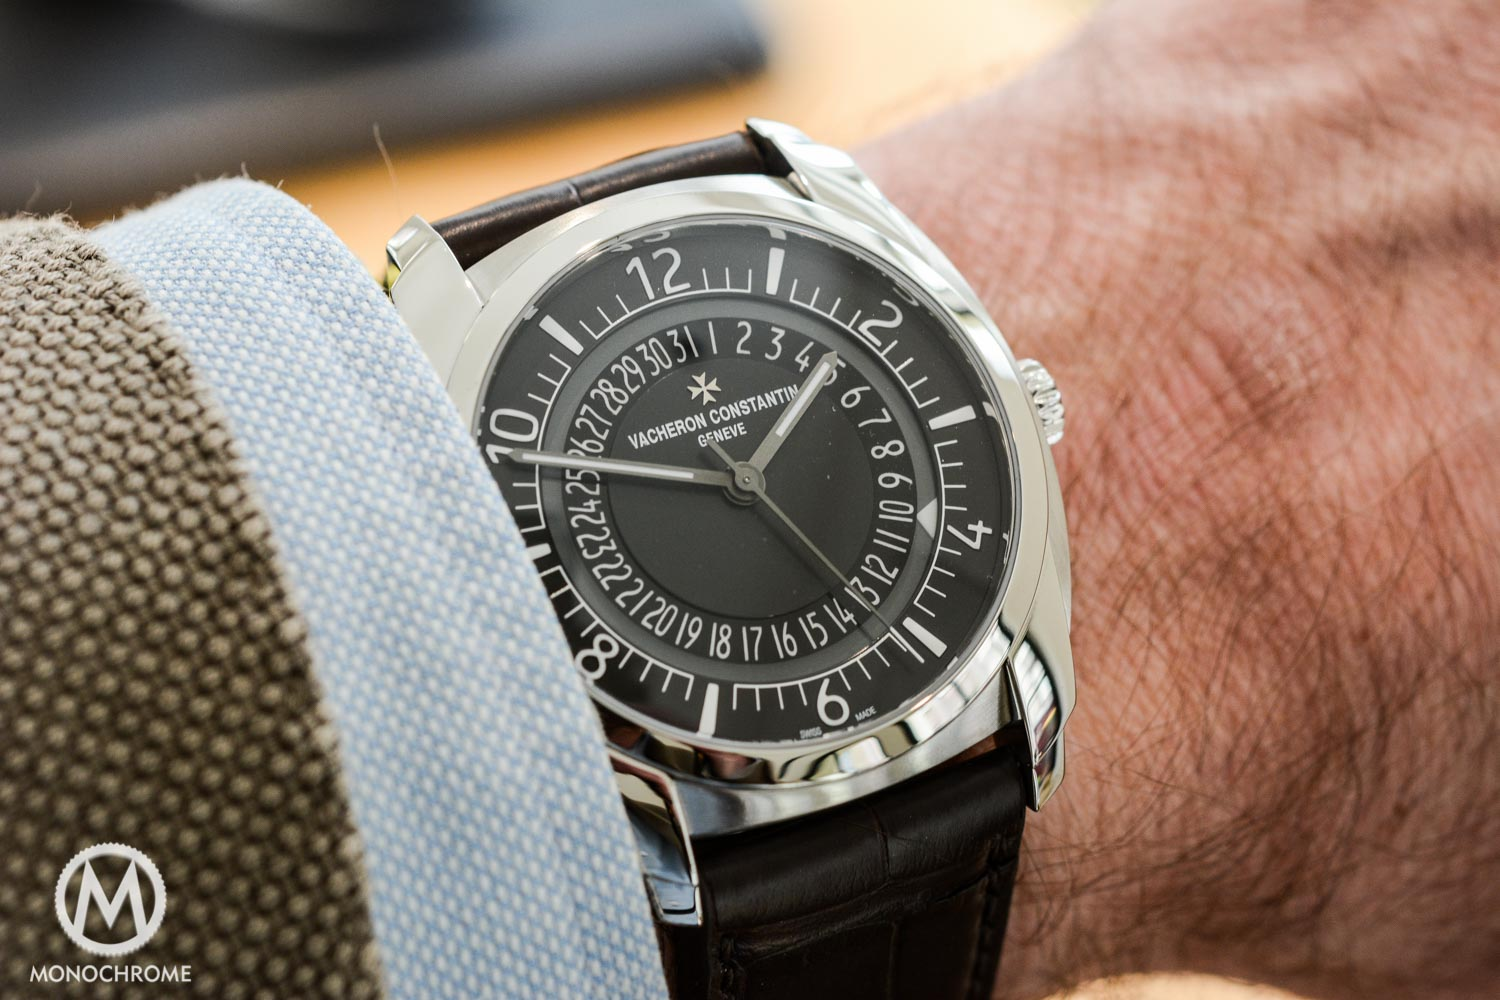 The New Vacheron Constantin Quai de l'Ile in Stainless Steel – Hands-on Photos, Specs and Price